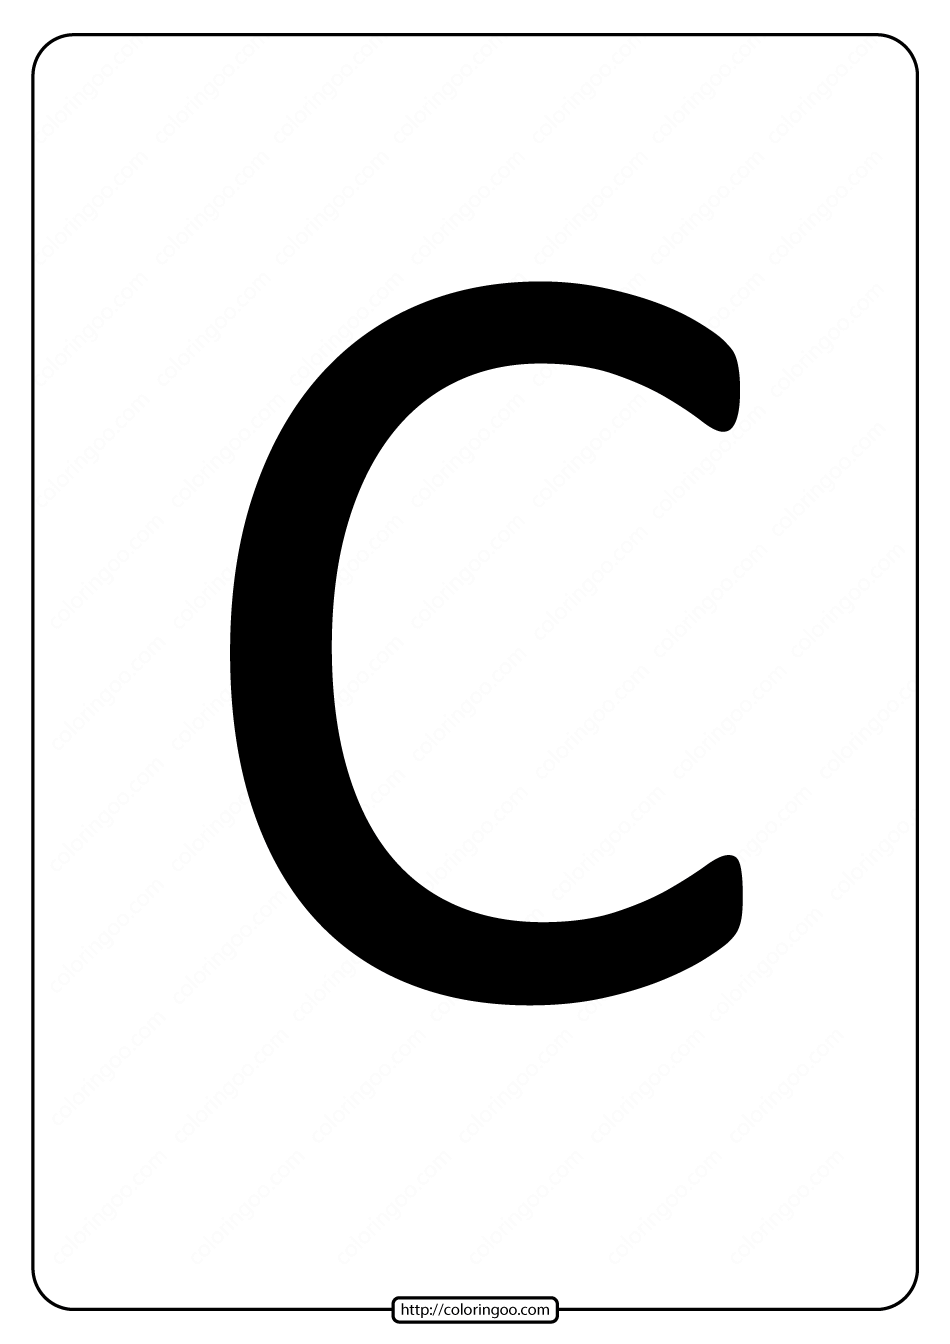 Printable A4 Size Uppercase Letters C Worksheet